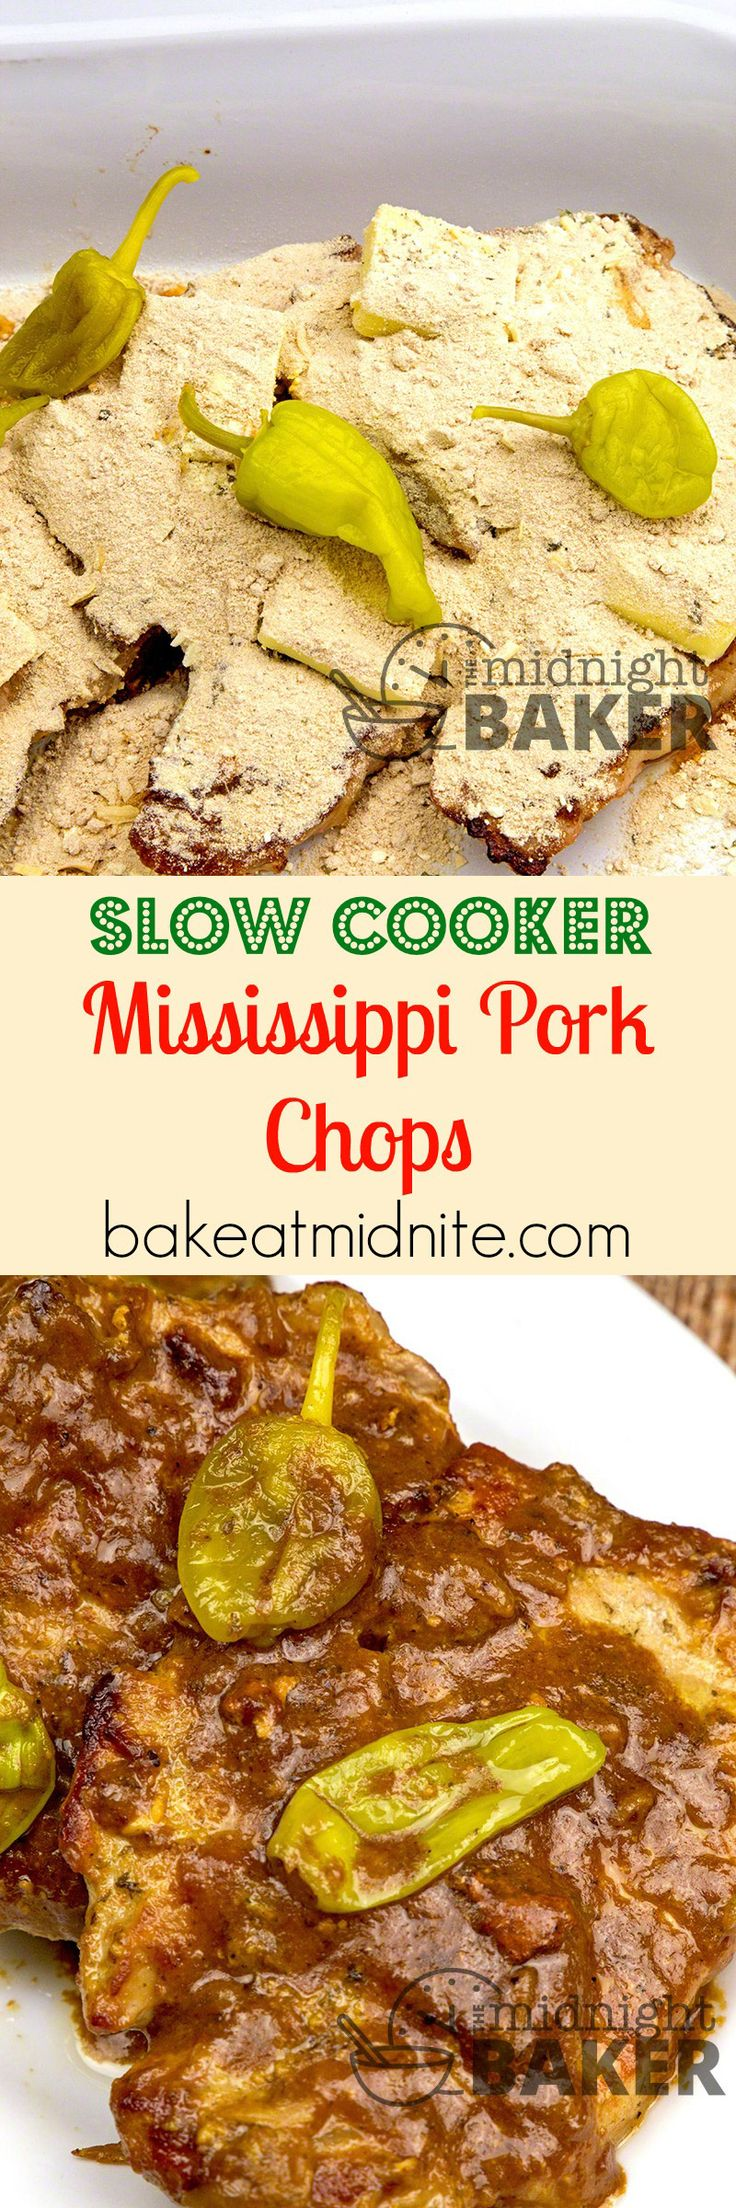 Different ways to cook pork chops - Slow Cooker Mississippi Pork Chops If You Love The Famous Mississippi Pot Roast You Ll Love These Easy Pork Chops Made With Similar Ingredients